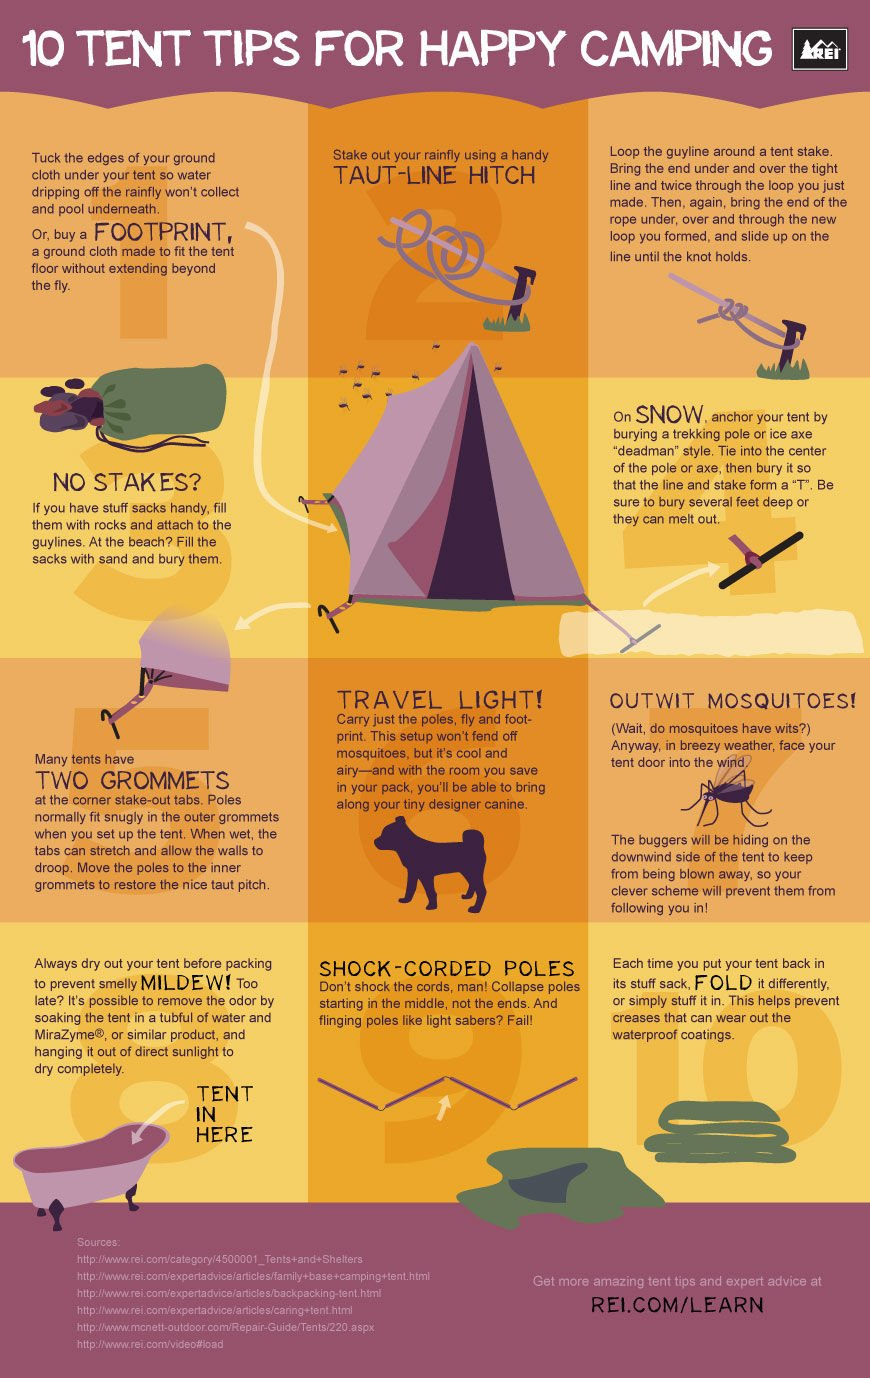 02 Tent Tips for Happy Camping (Infographic)